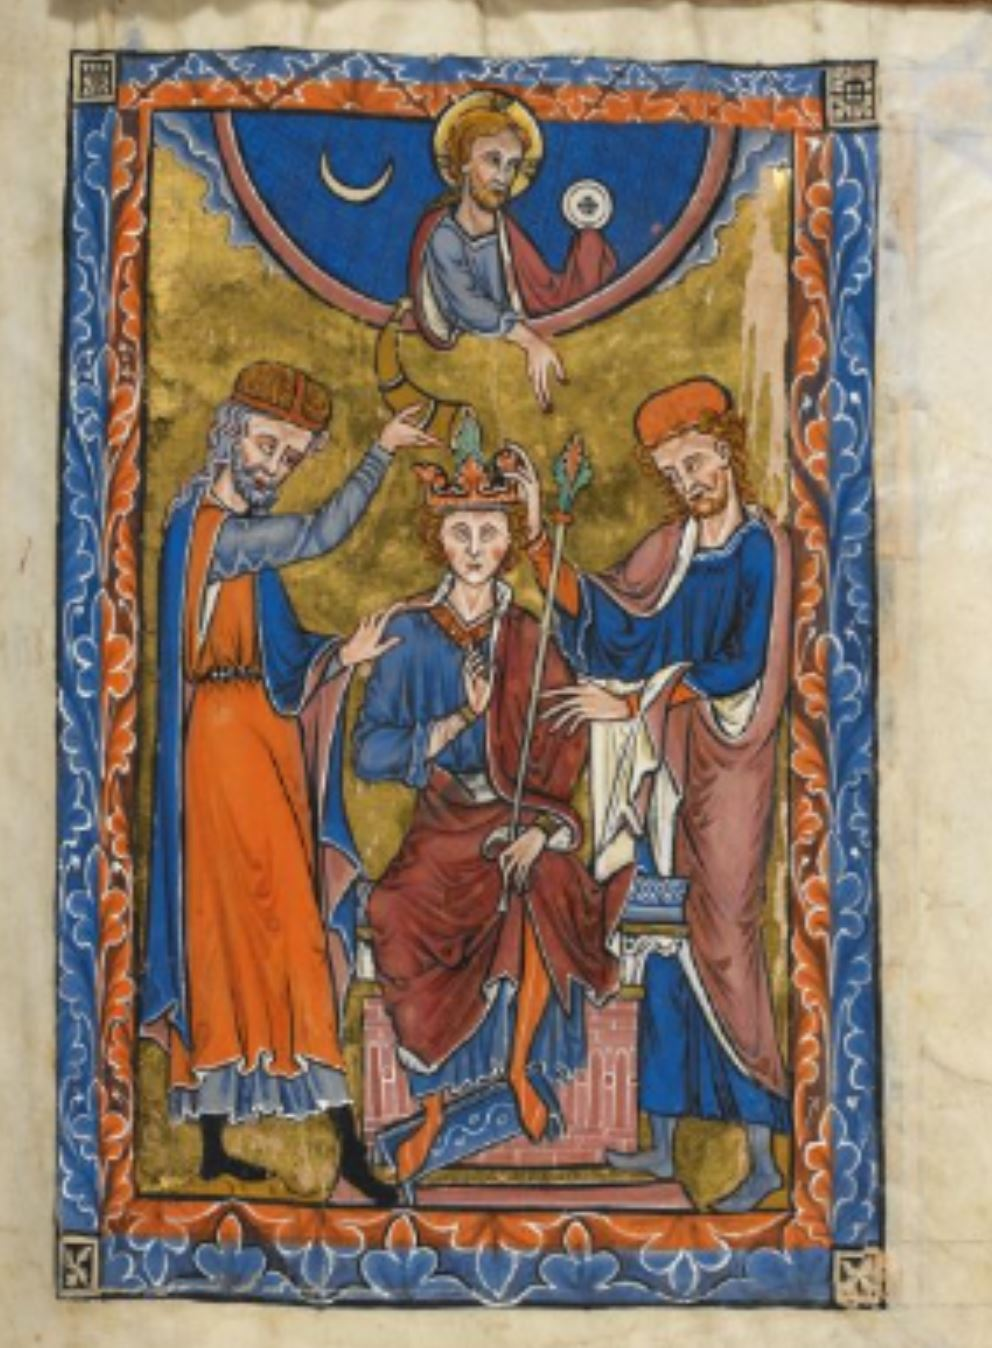 1260 Rutland Psalter Anointing and Crowning of King David, with Christ above flanked by the Sun (marked as a Host) and Moon, before Psalm 26 BL Add MS 62925 fol 29r